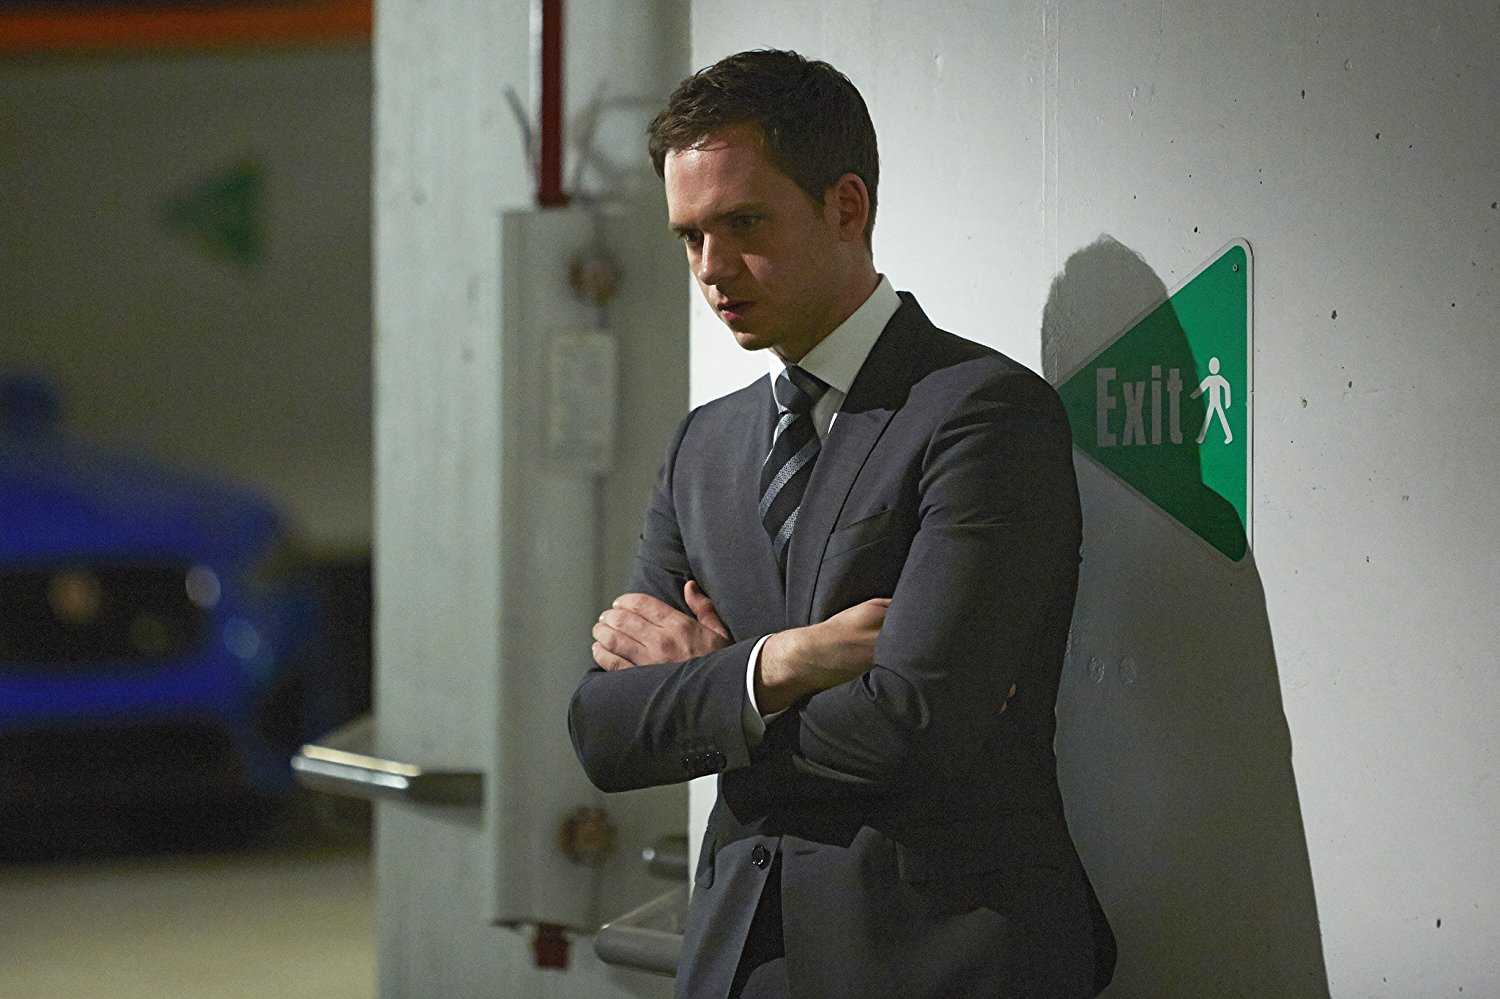 Patrick J. Adams Is Leaving 'Suits' With Meghan Markle And Hints At A Happy Ending For Their Characters | patrick j adams